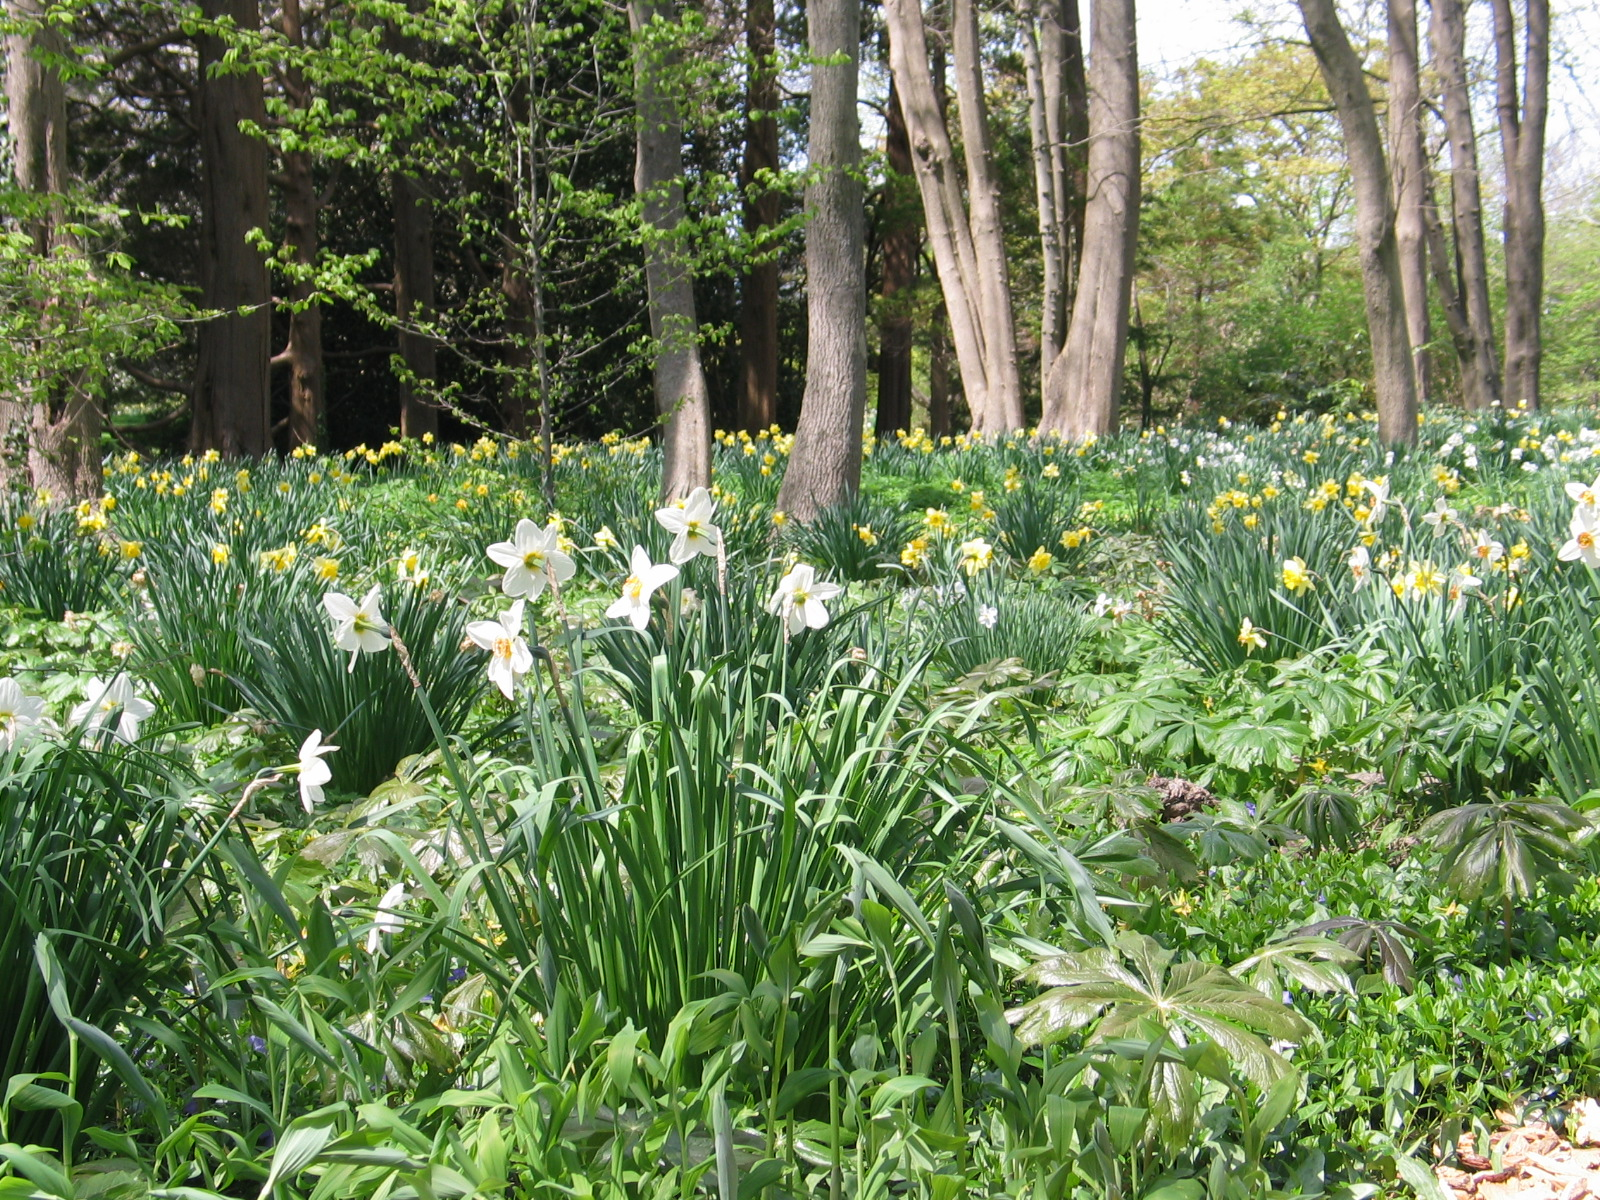 The spring bulbs naturalize in the bosquet section of Blithewold.